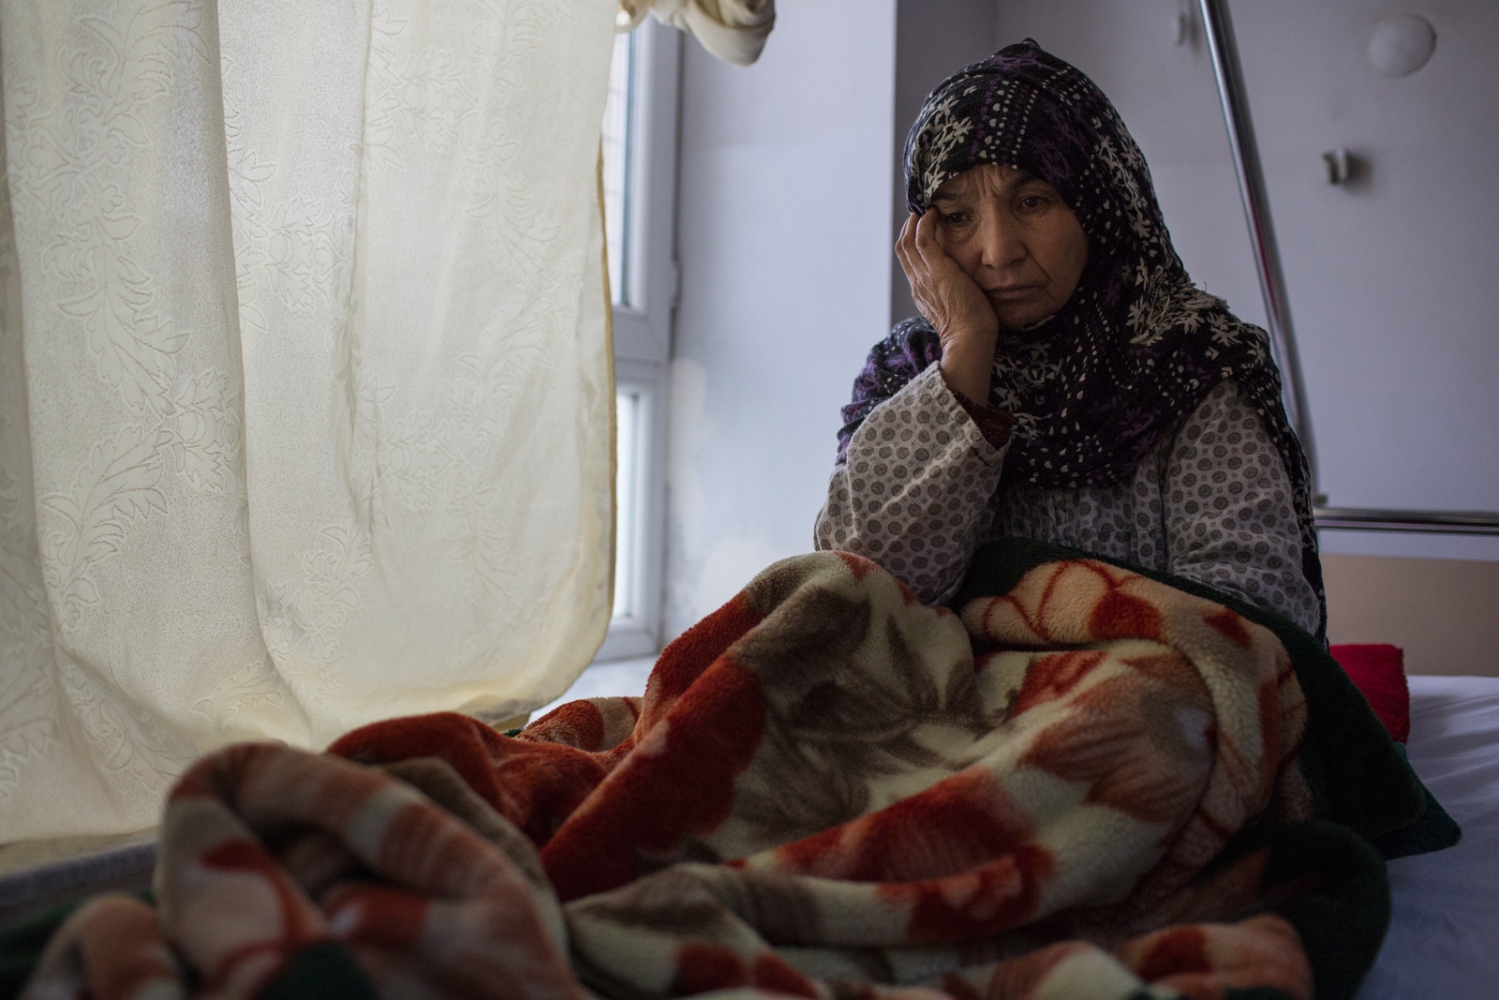 Her children brought Zahra to Mazar's public hospital after her depression got worse. They said she has taken medication for as long as they can remember. Zahra believes her problems began when she was very young when she was often scared at night whilst looking after cattle in the desert. Mazar e Sharif, Afghanistan. December 2015.